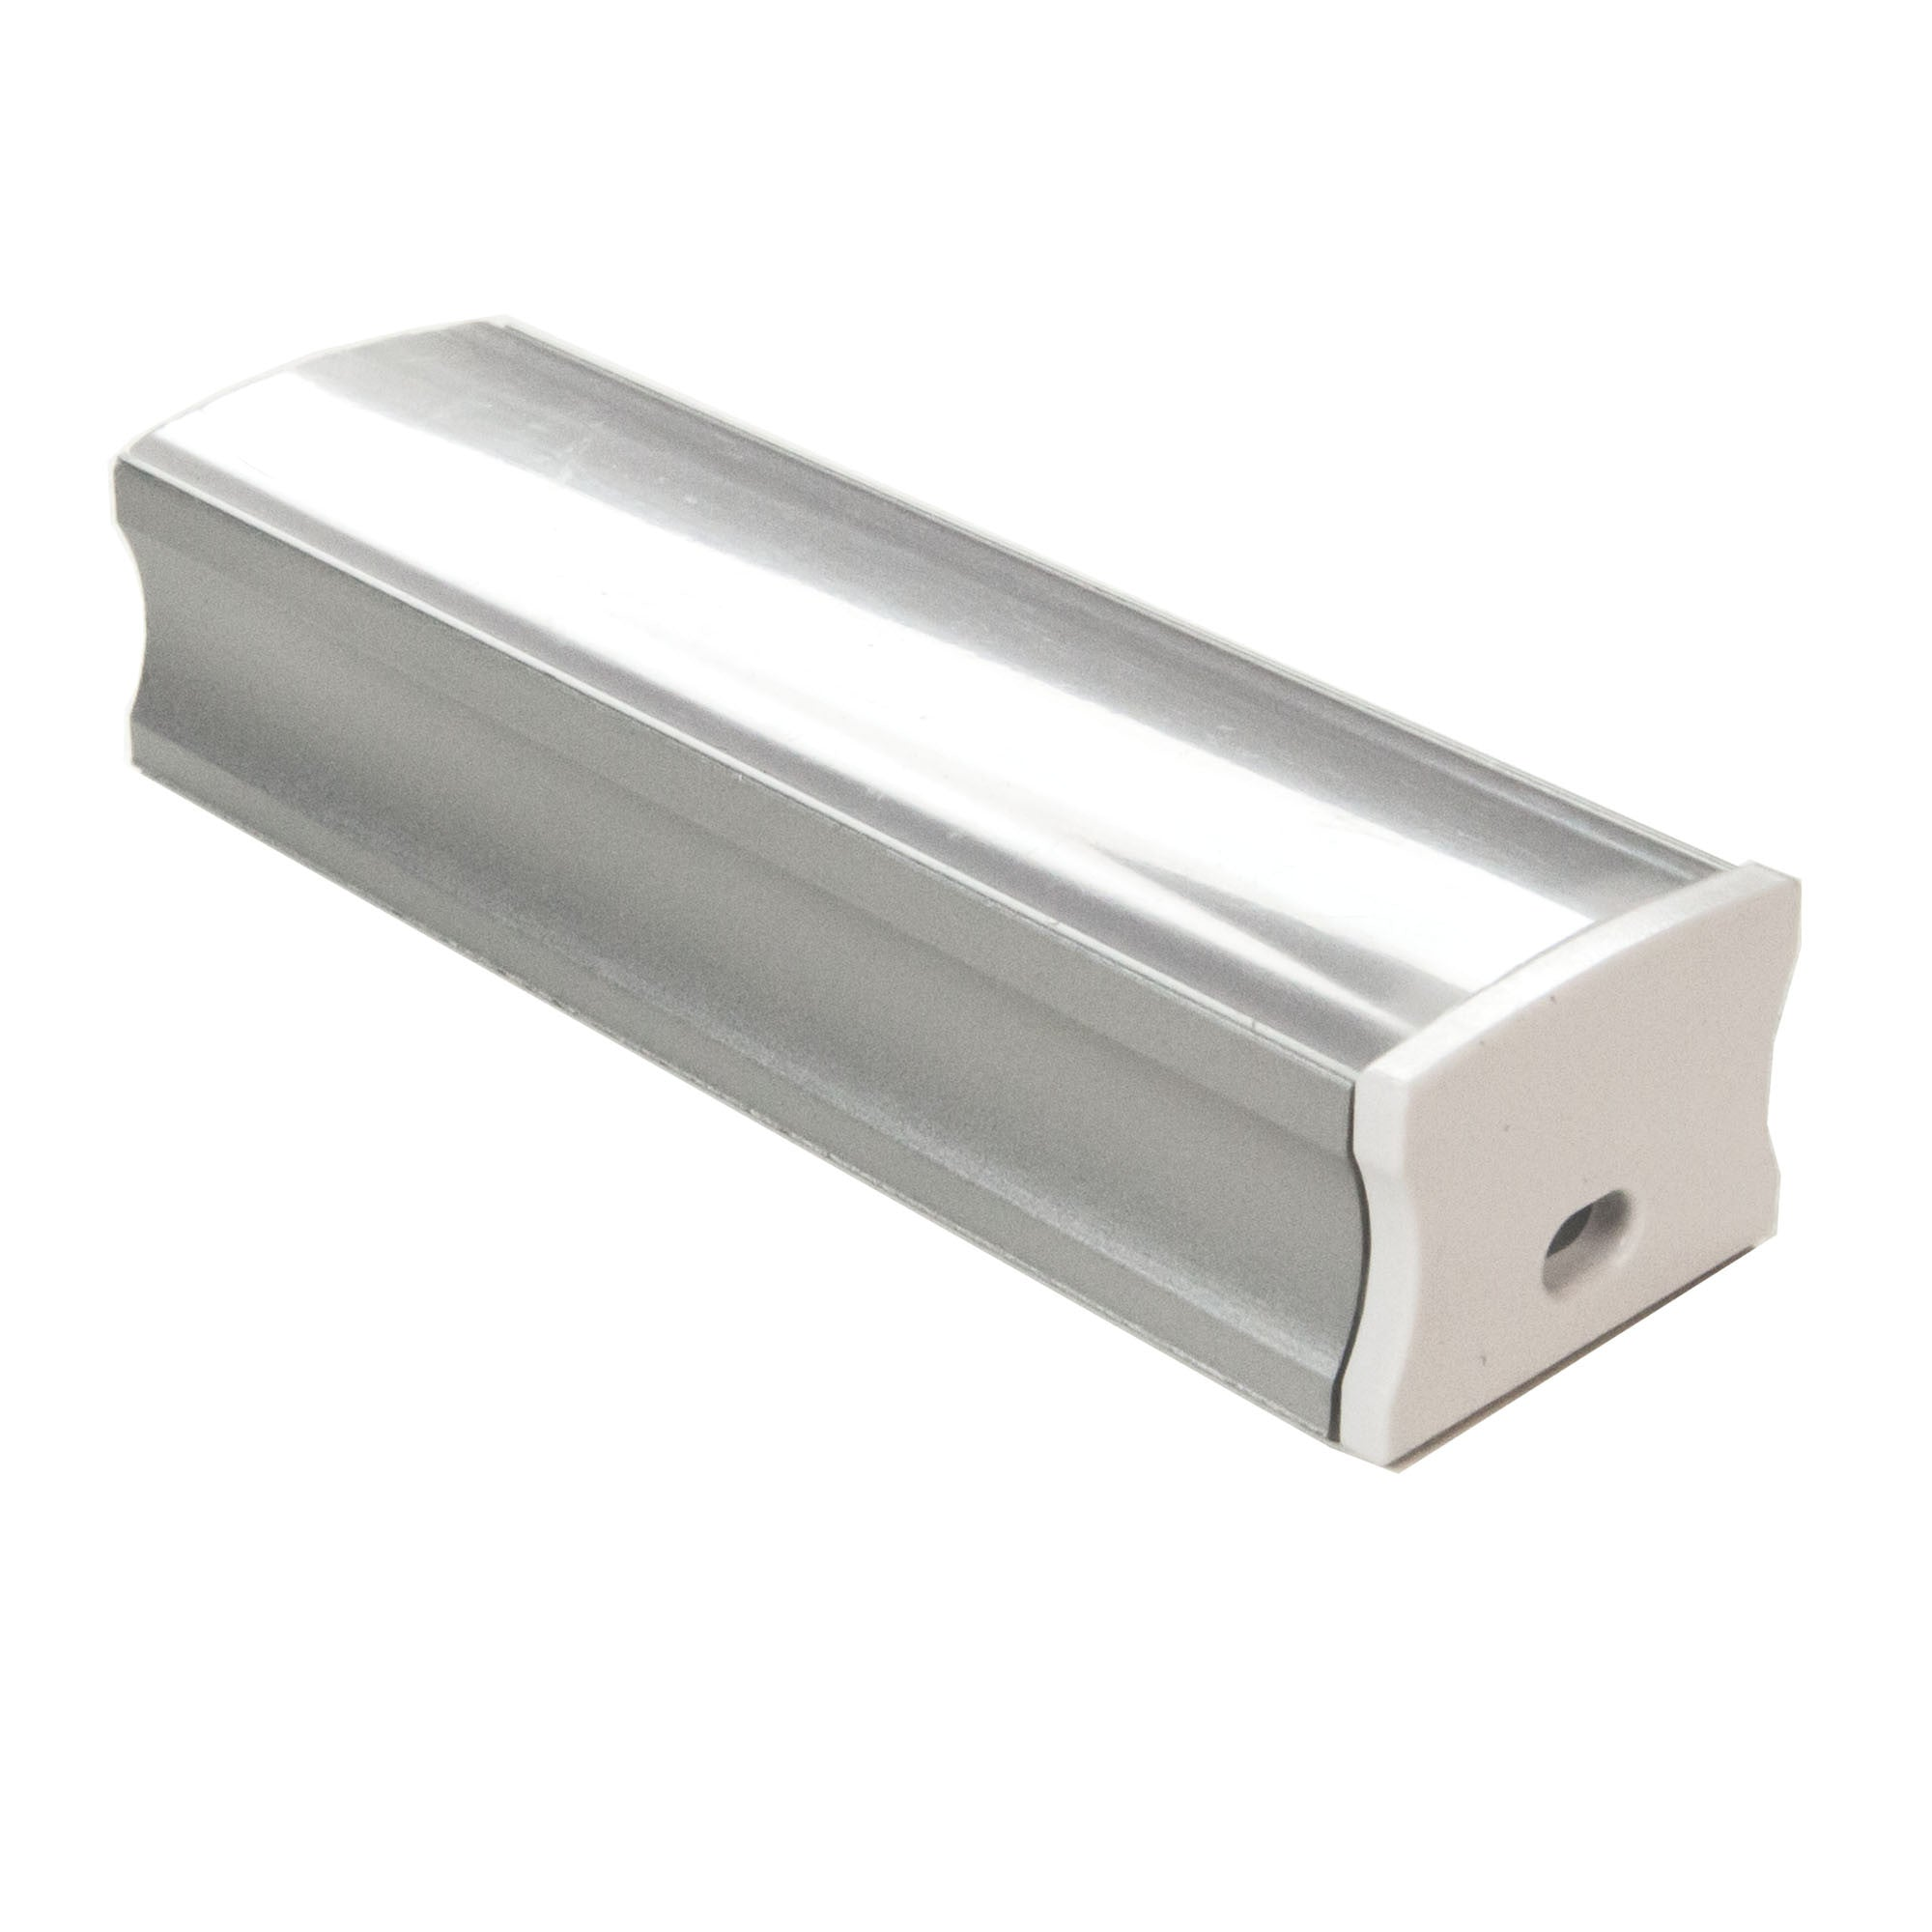 Aluminum Channel - MOSS-ALJ-2316 - Moss LED